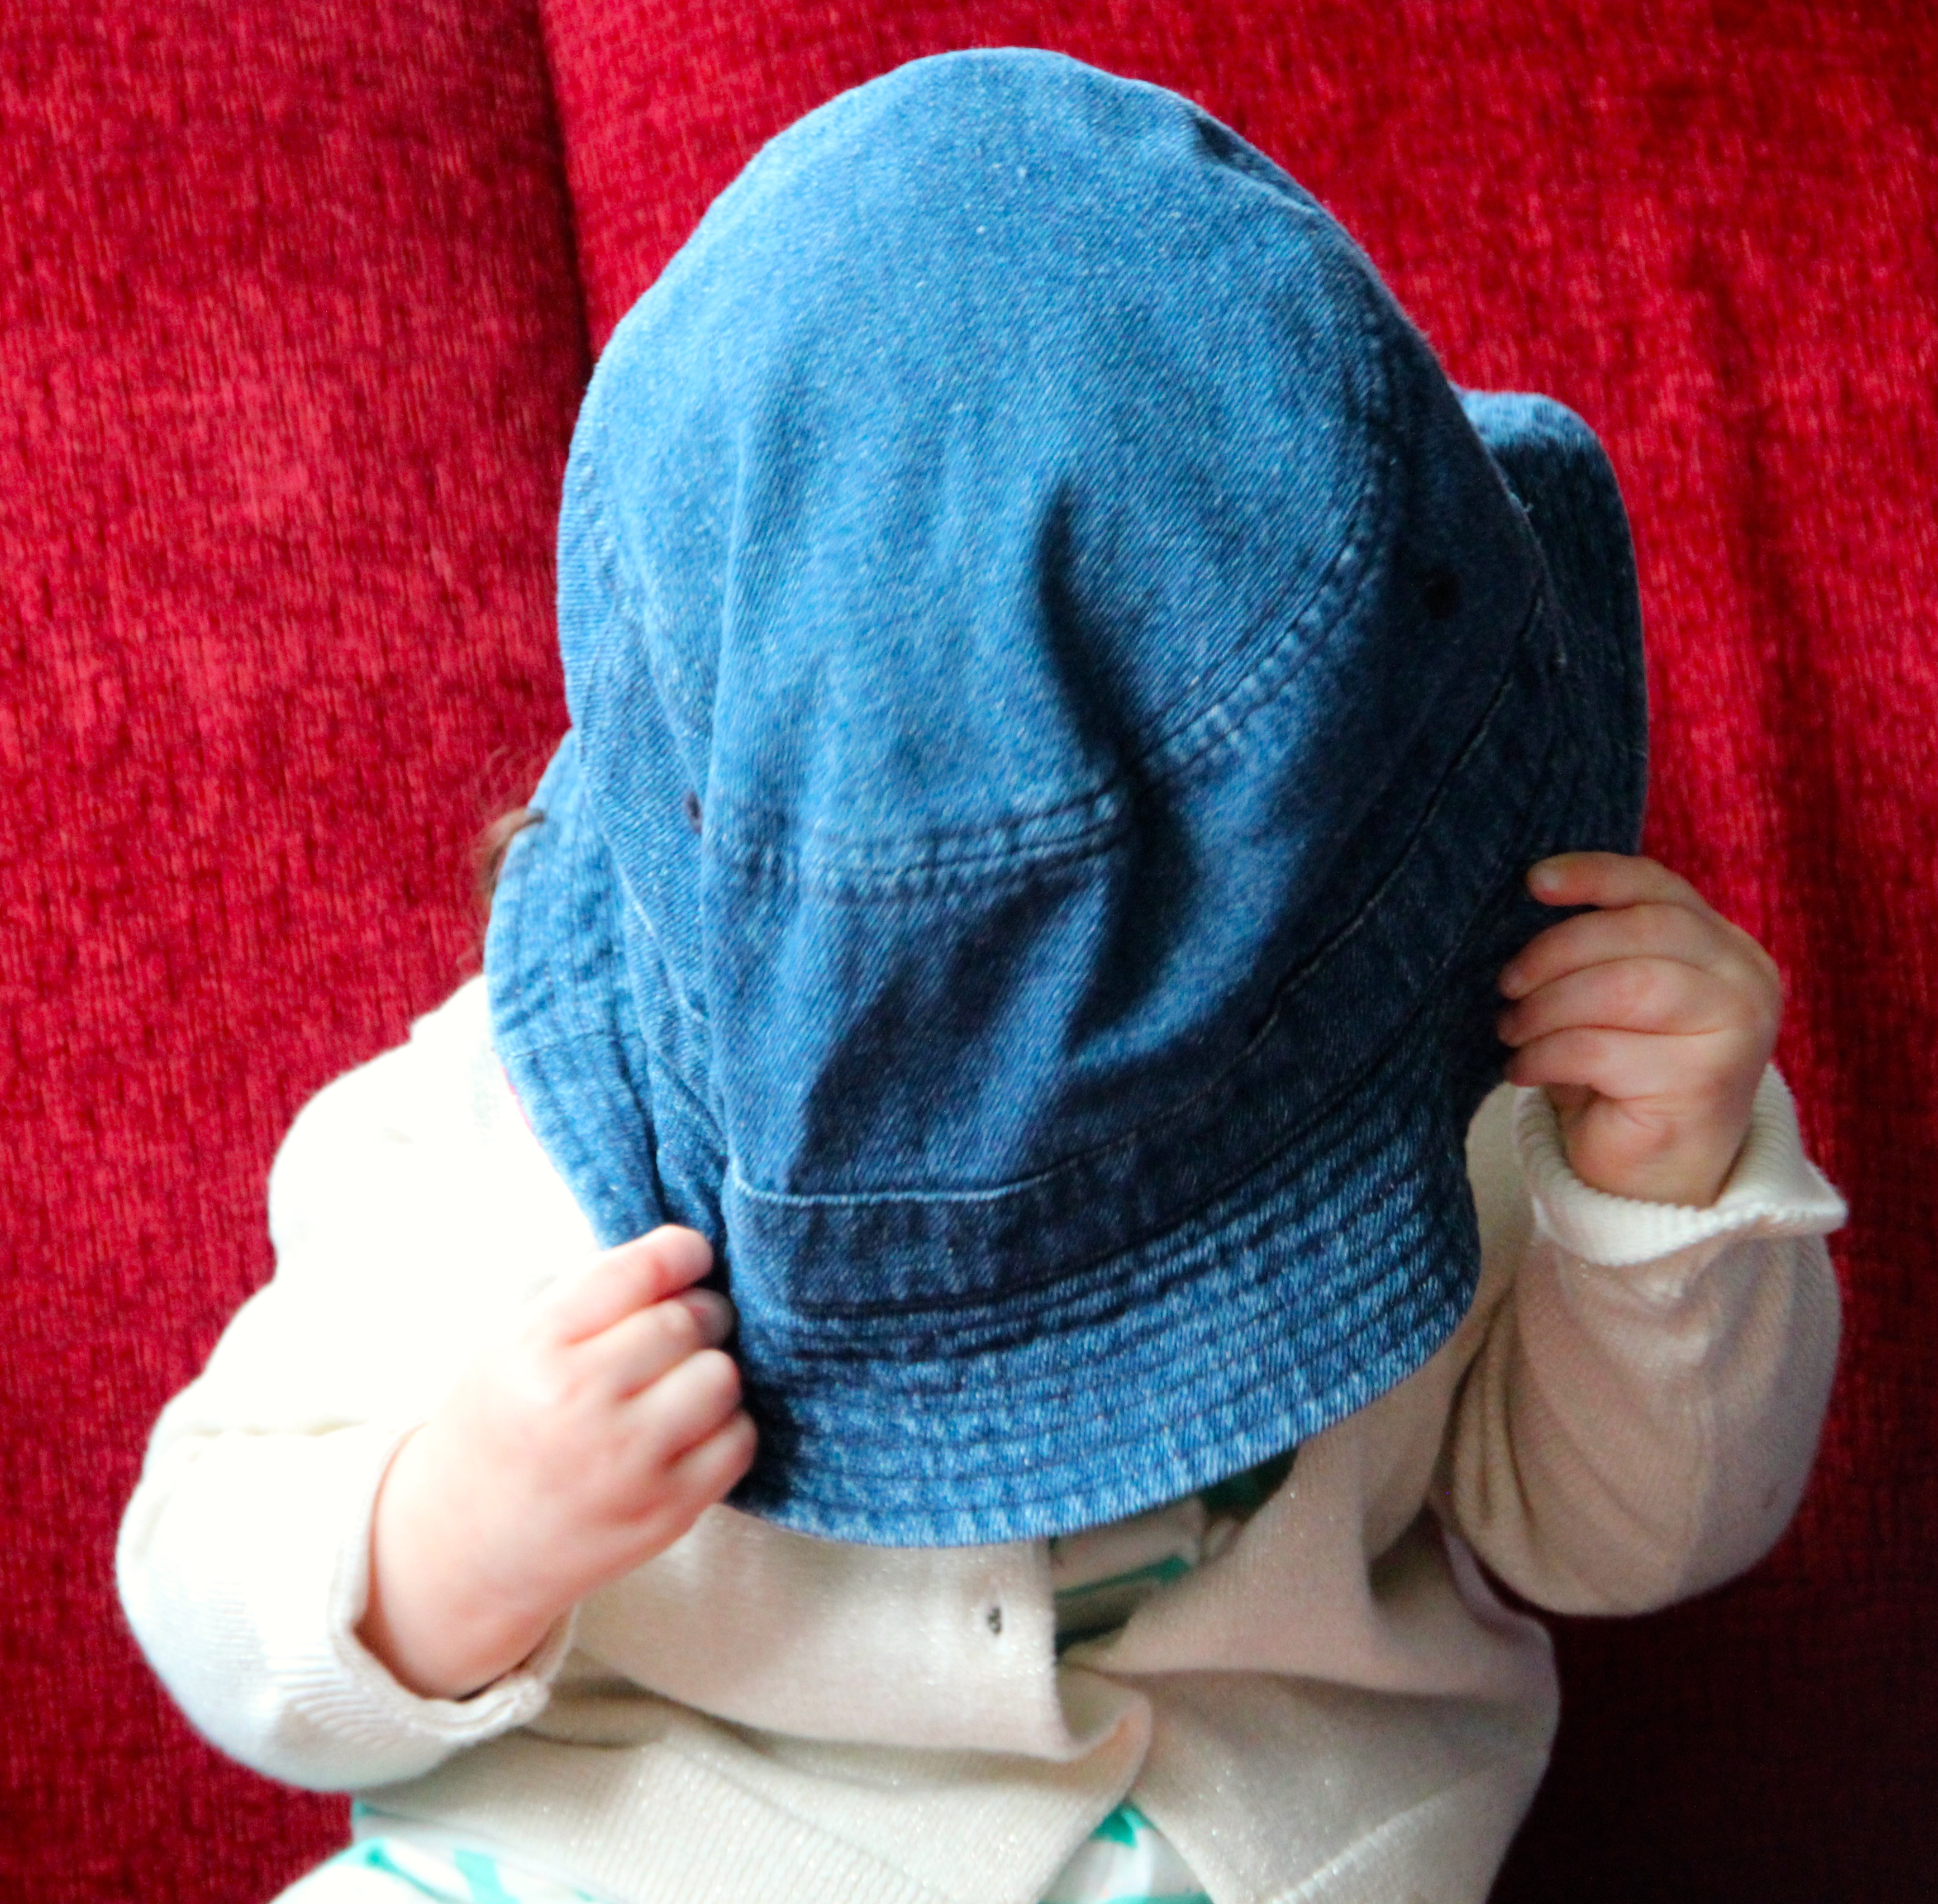 Baby with a Hat 2